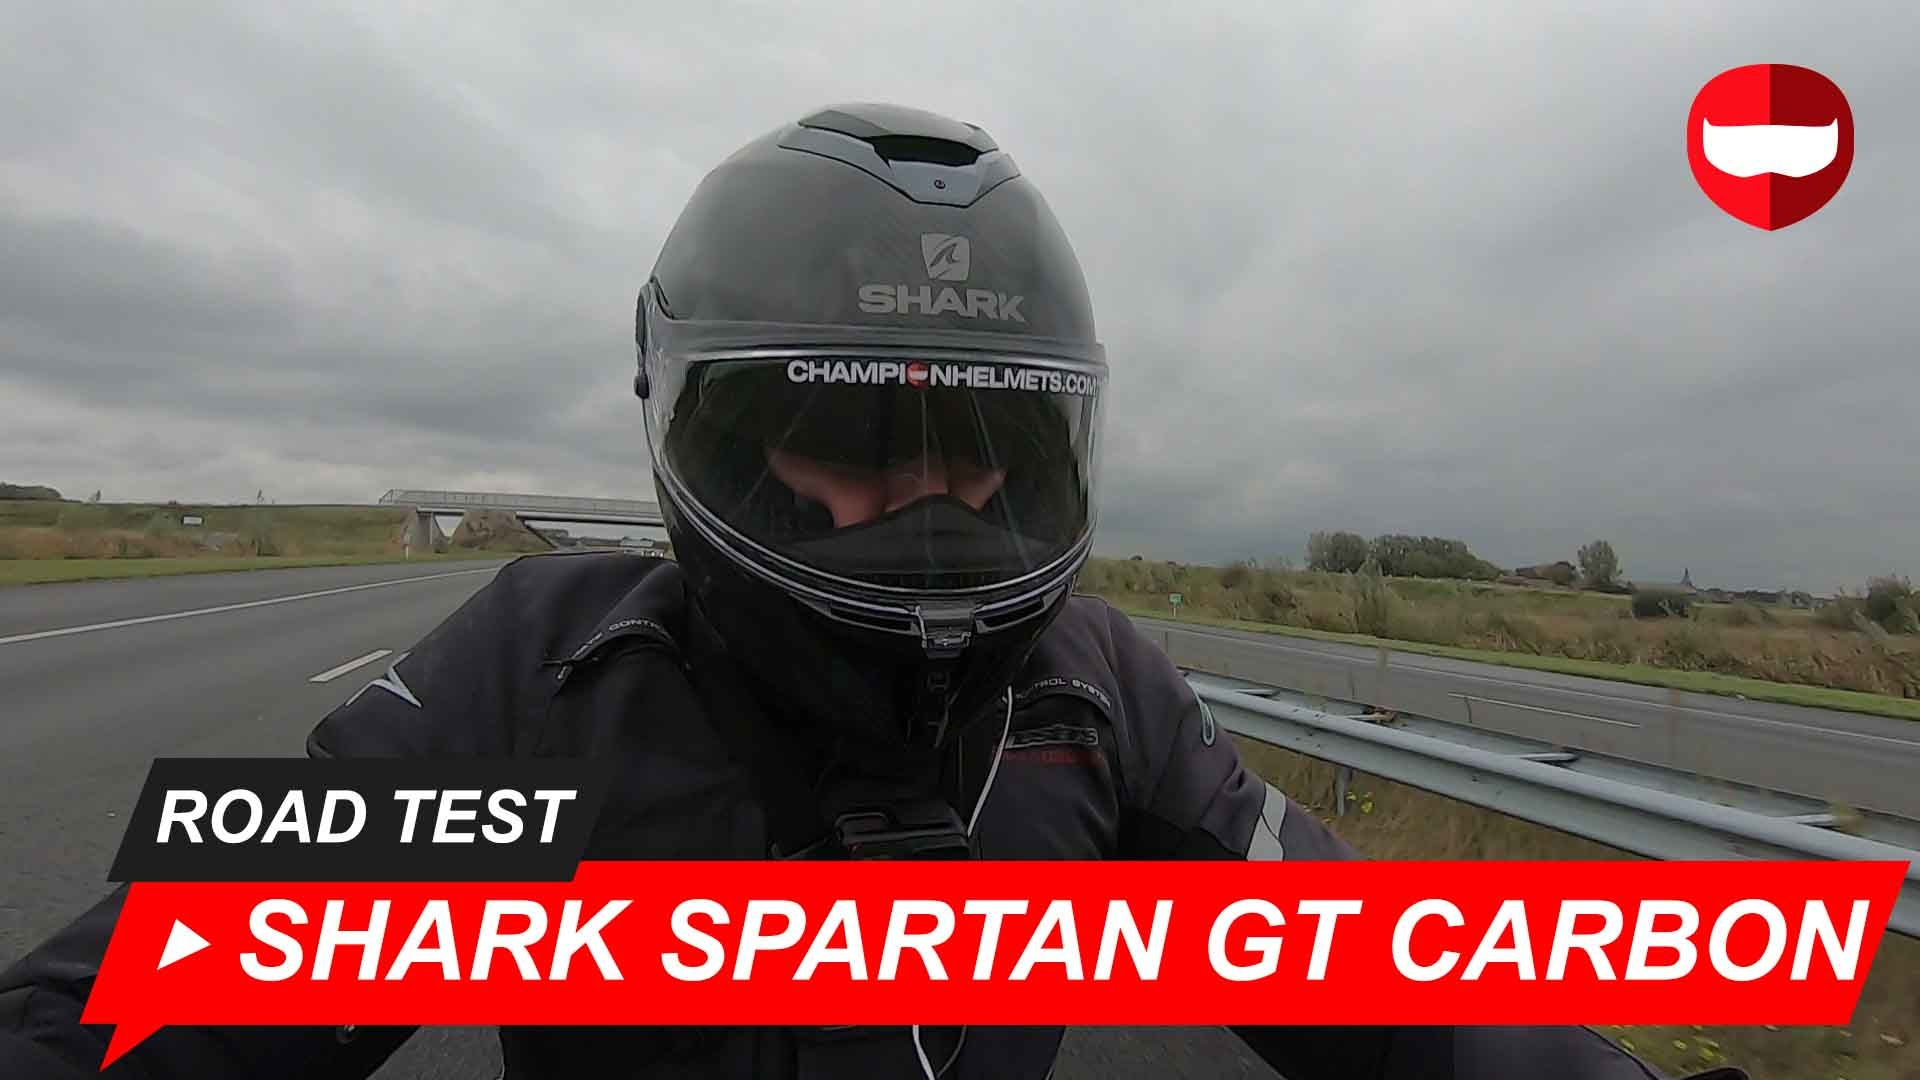 Shark Spartan GT Carbon Review and Road Test with Video